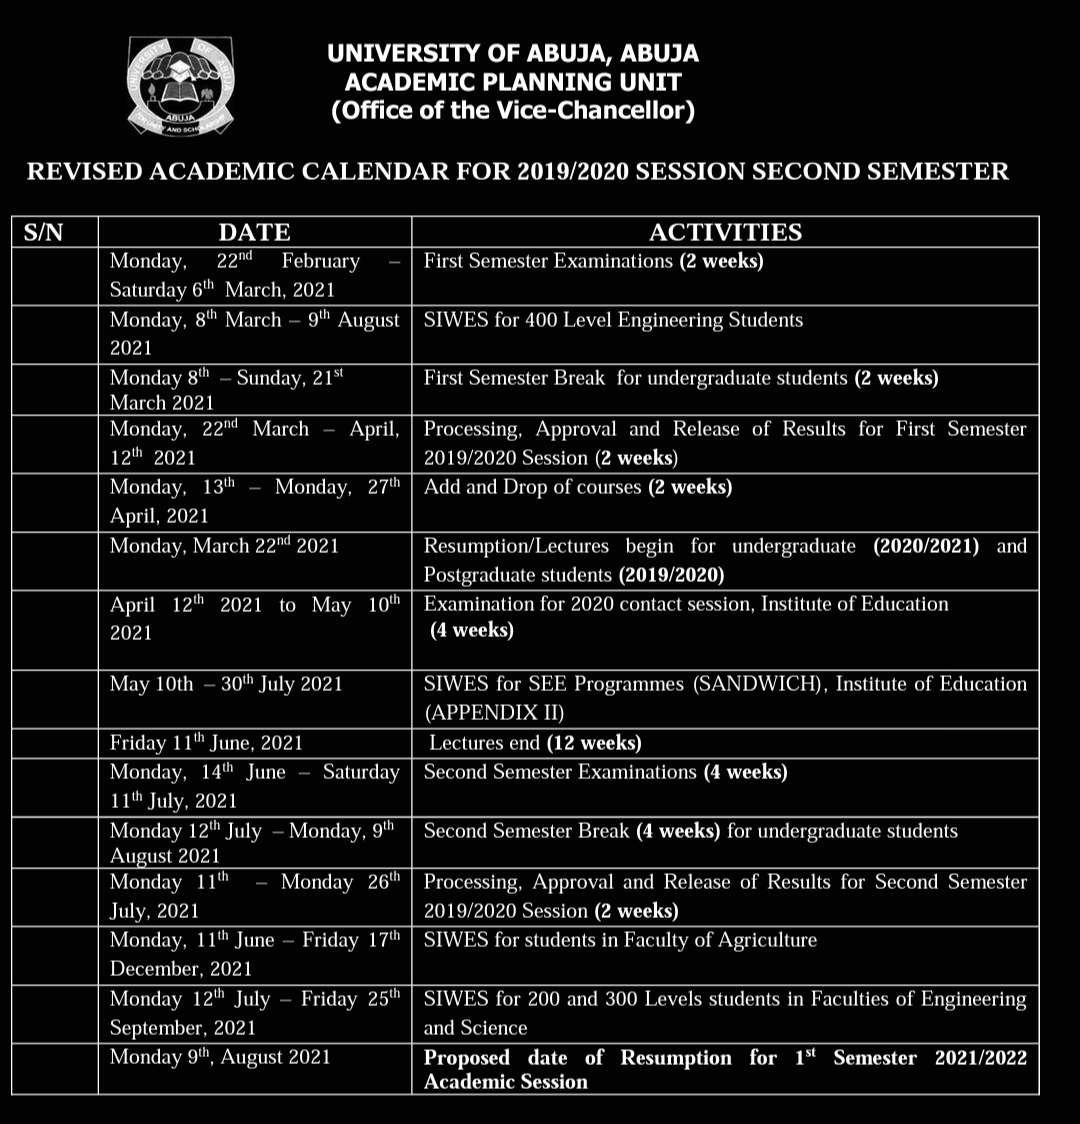 Timetable as at first semester examinations